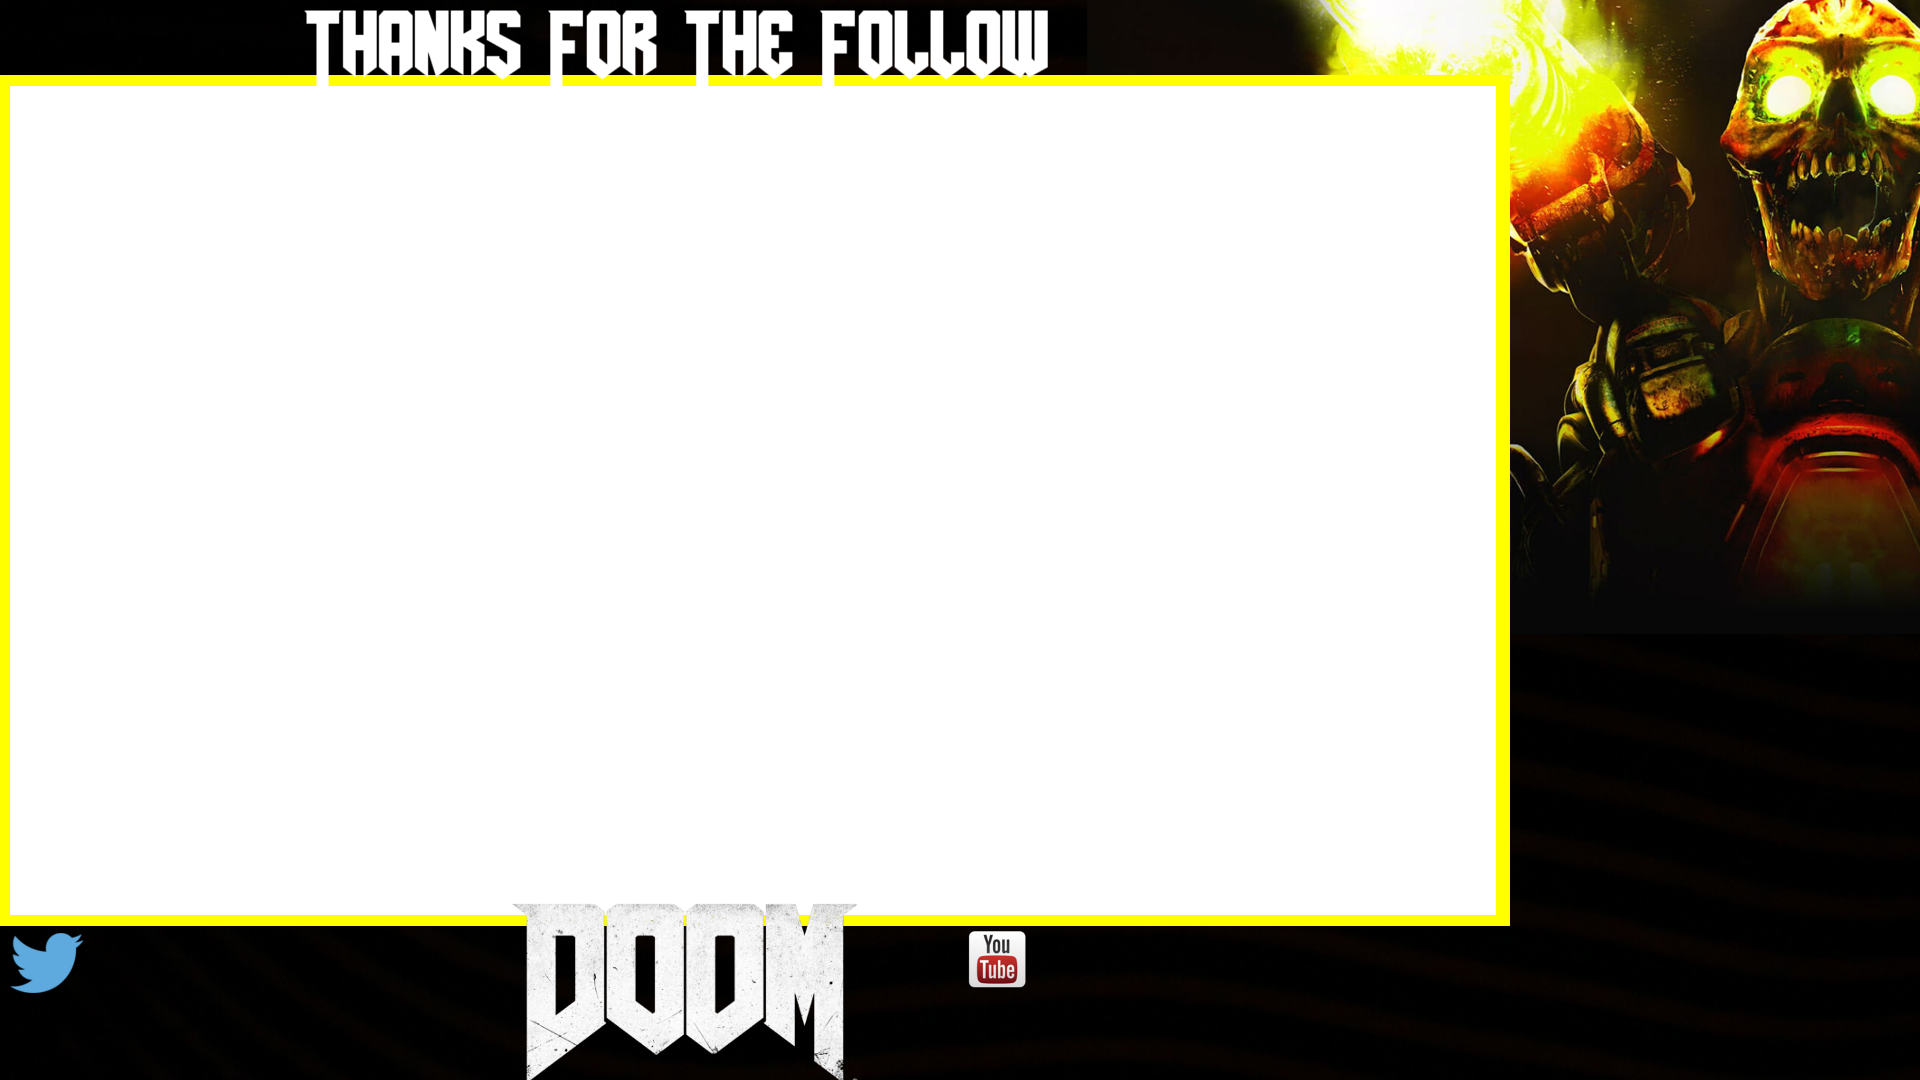 doom no web cam